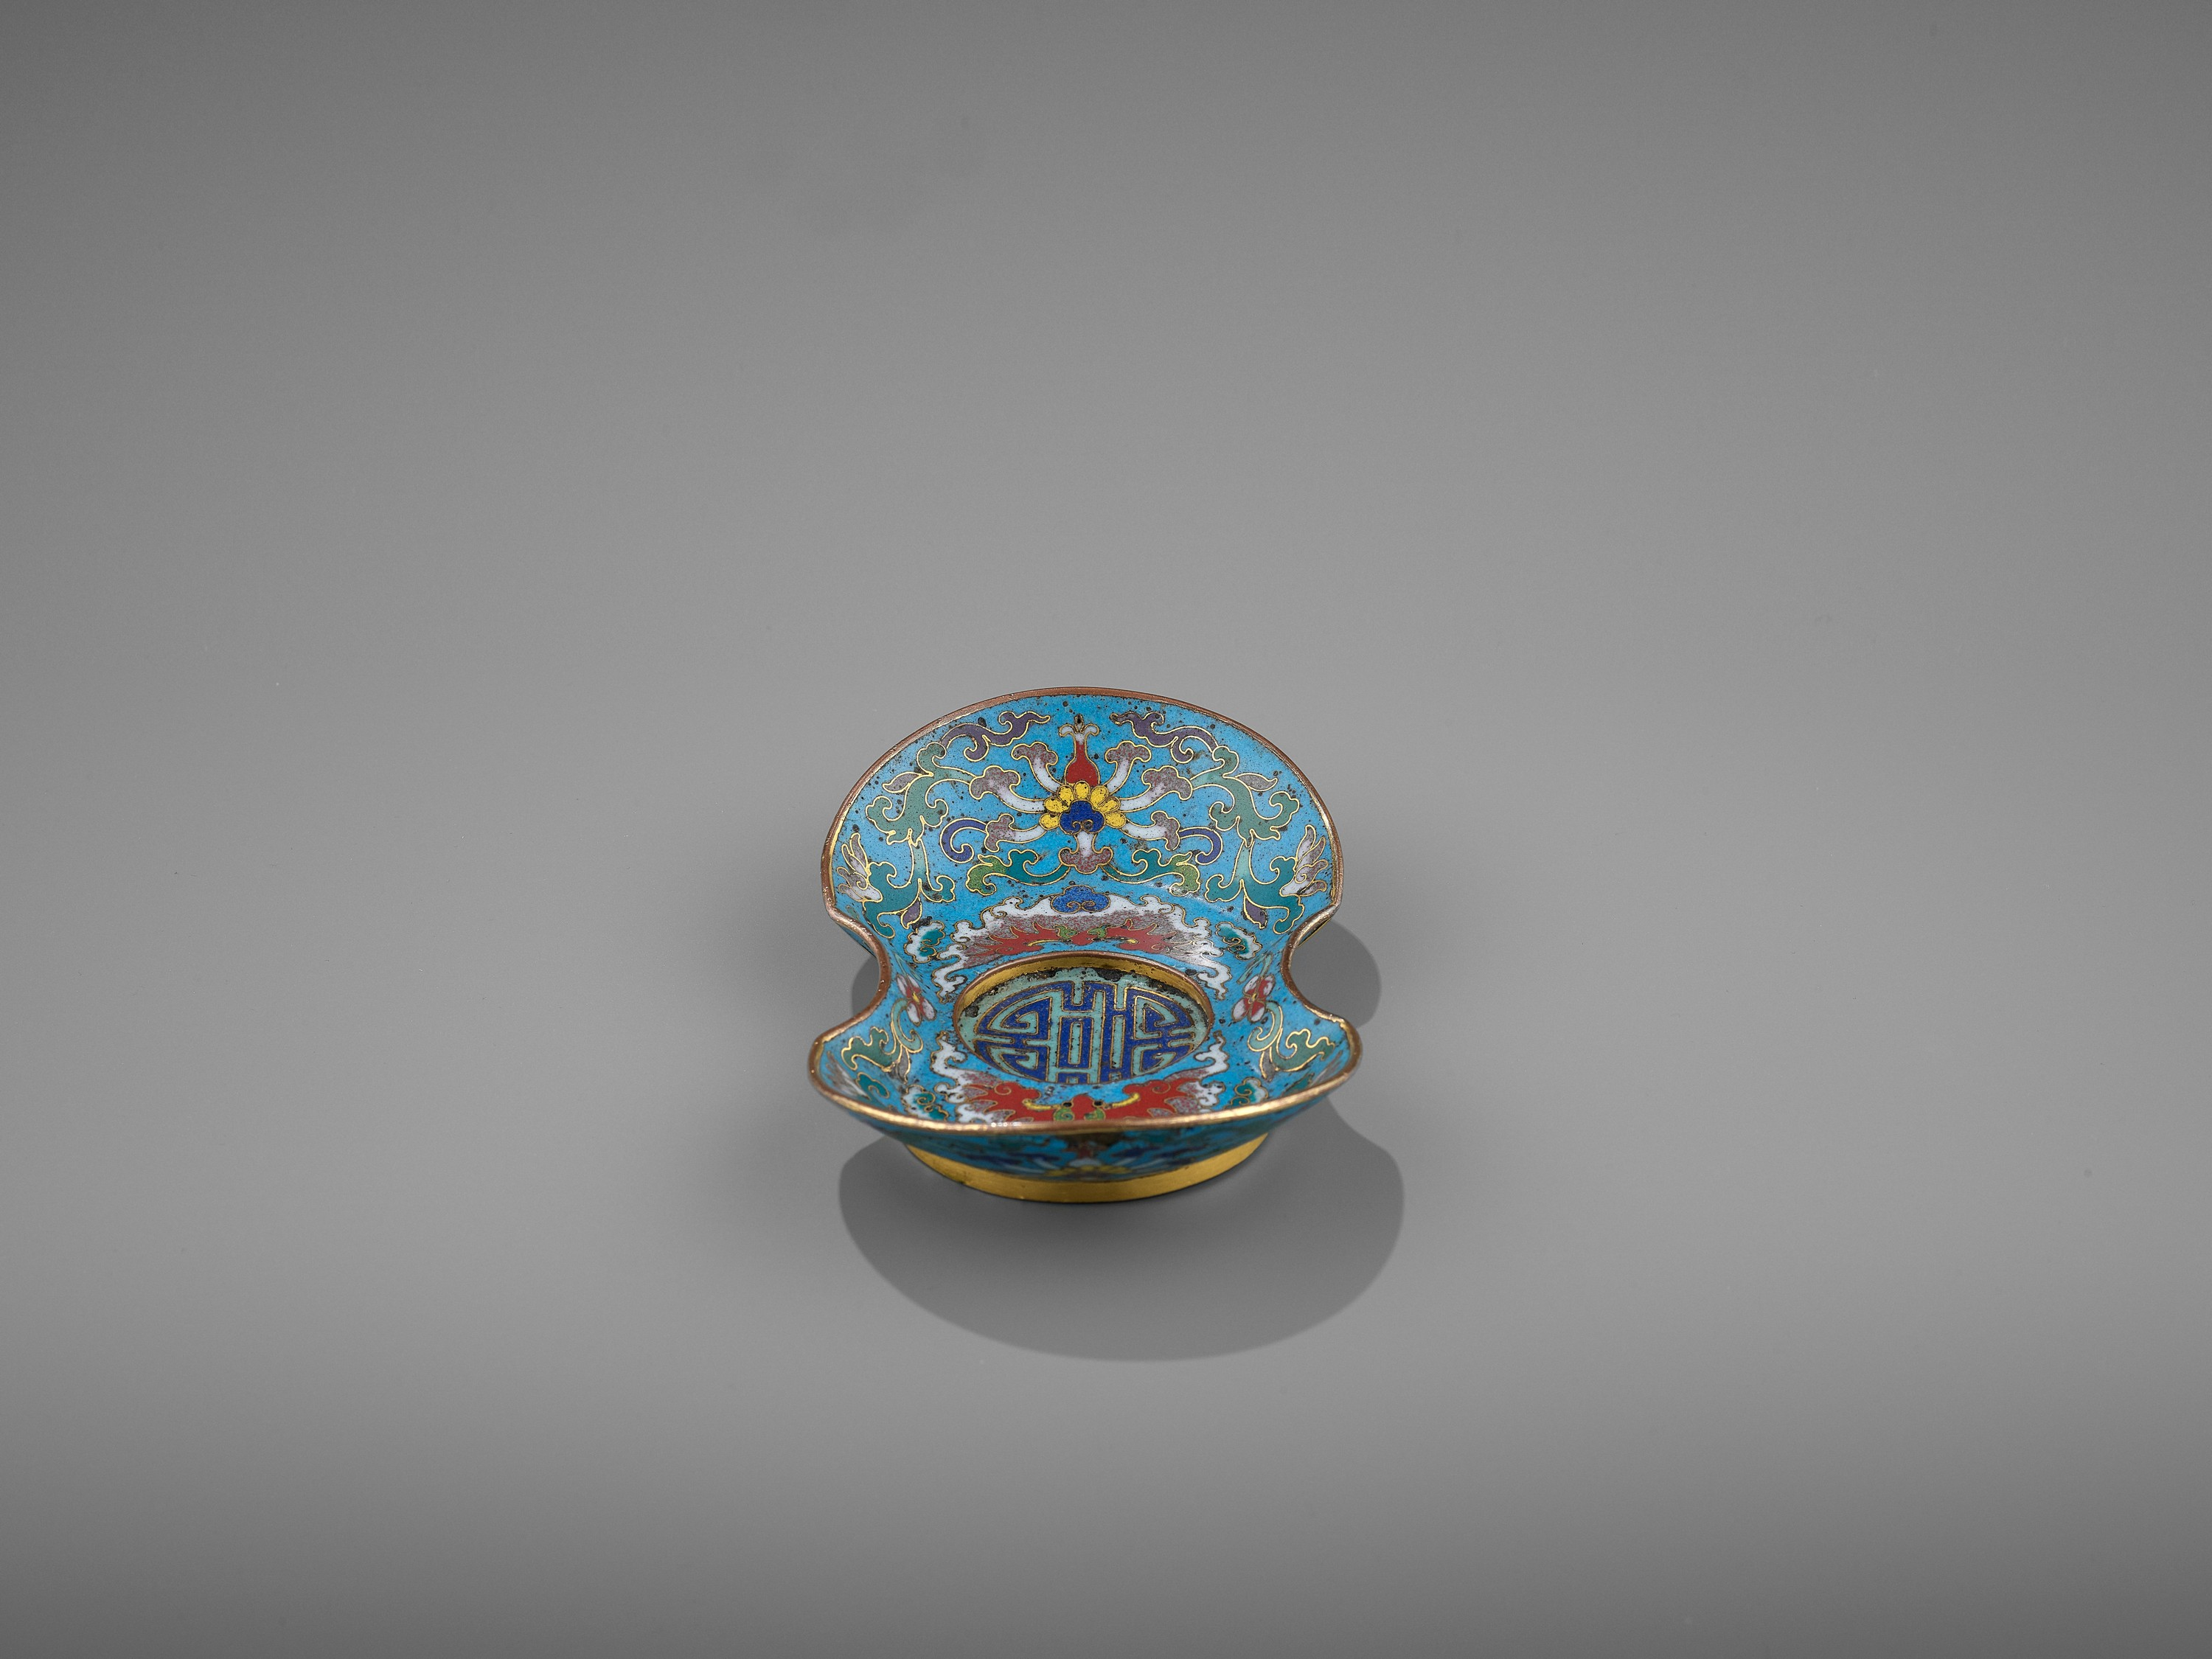 A CLOISONNE AND GILT-BRONZE 'DOUBLE HAPPINESS' CUP STAND, QIANLONG - Image 6 of 10